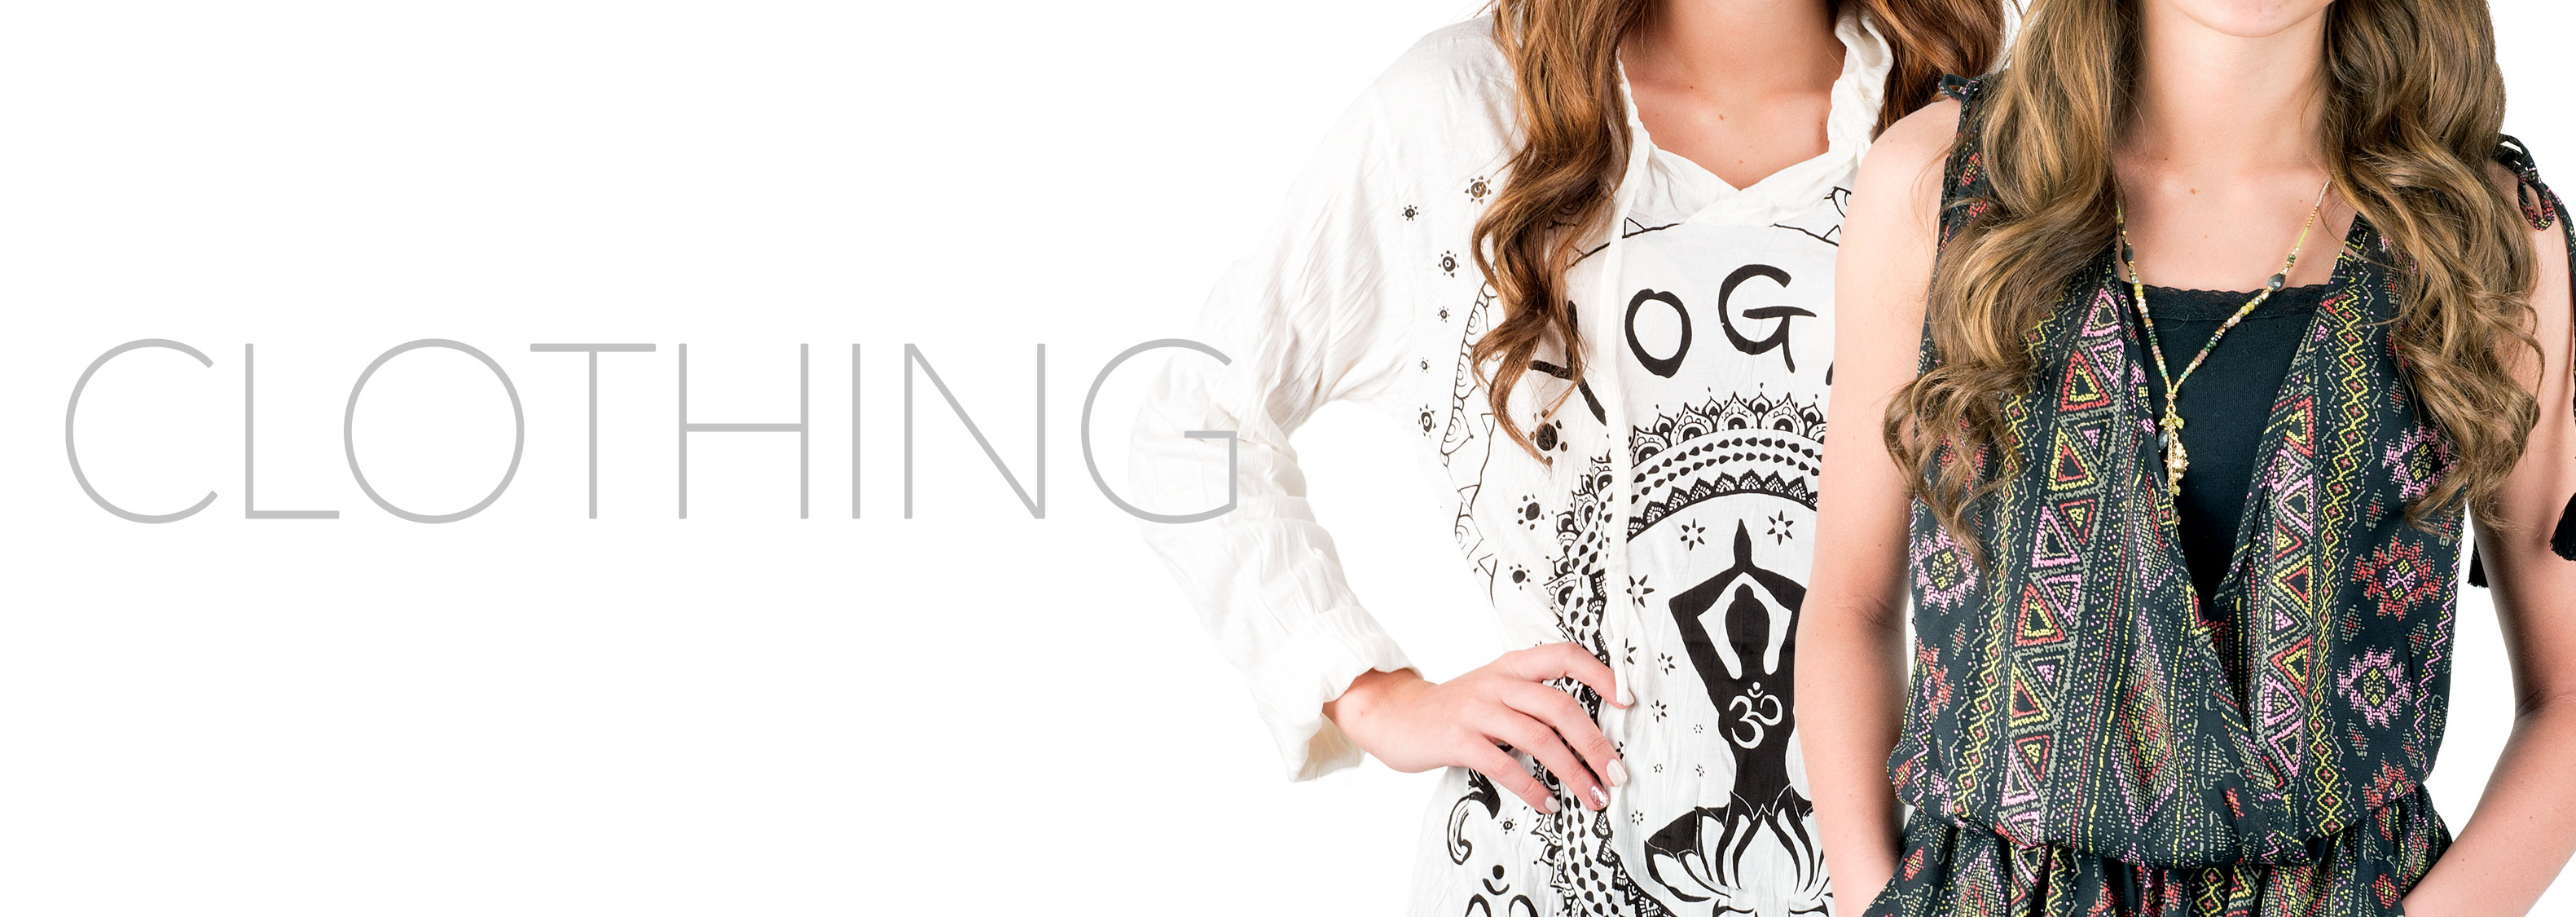 banner_clothing